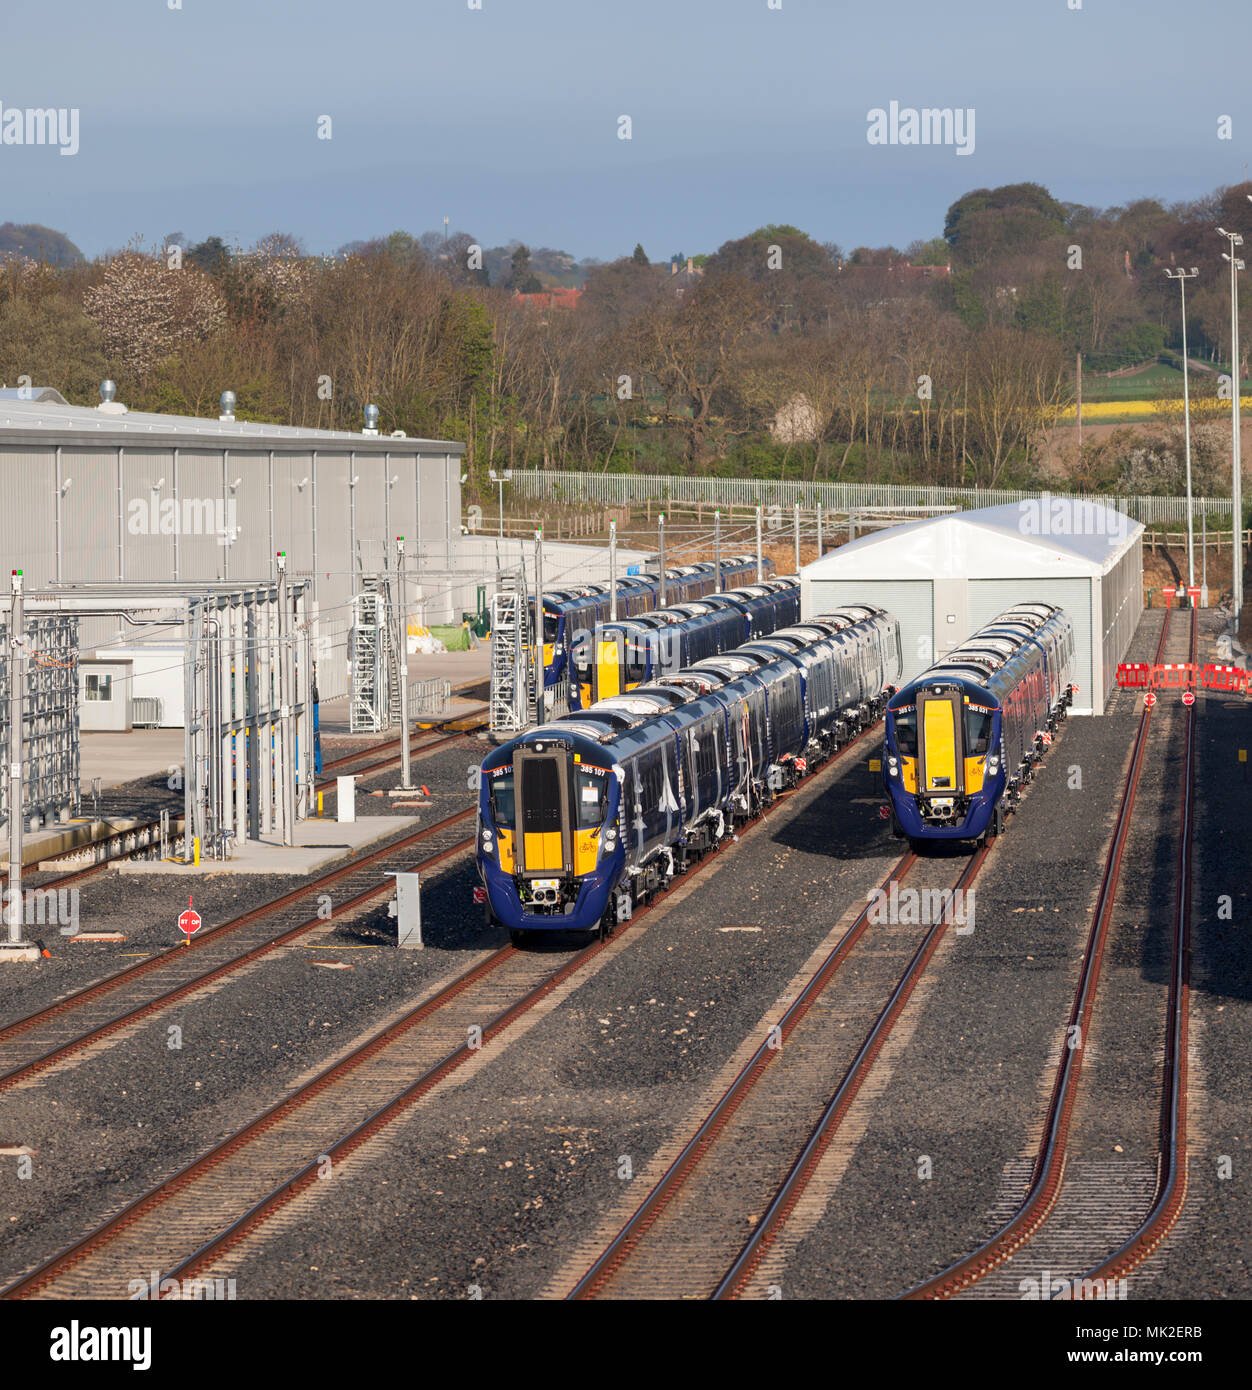 New class class 385 electric trains  for Scotrail awaiting delivery at the Hitachi train assembly factory at Newton Aycliffe, county Durham Stock Photo